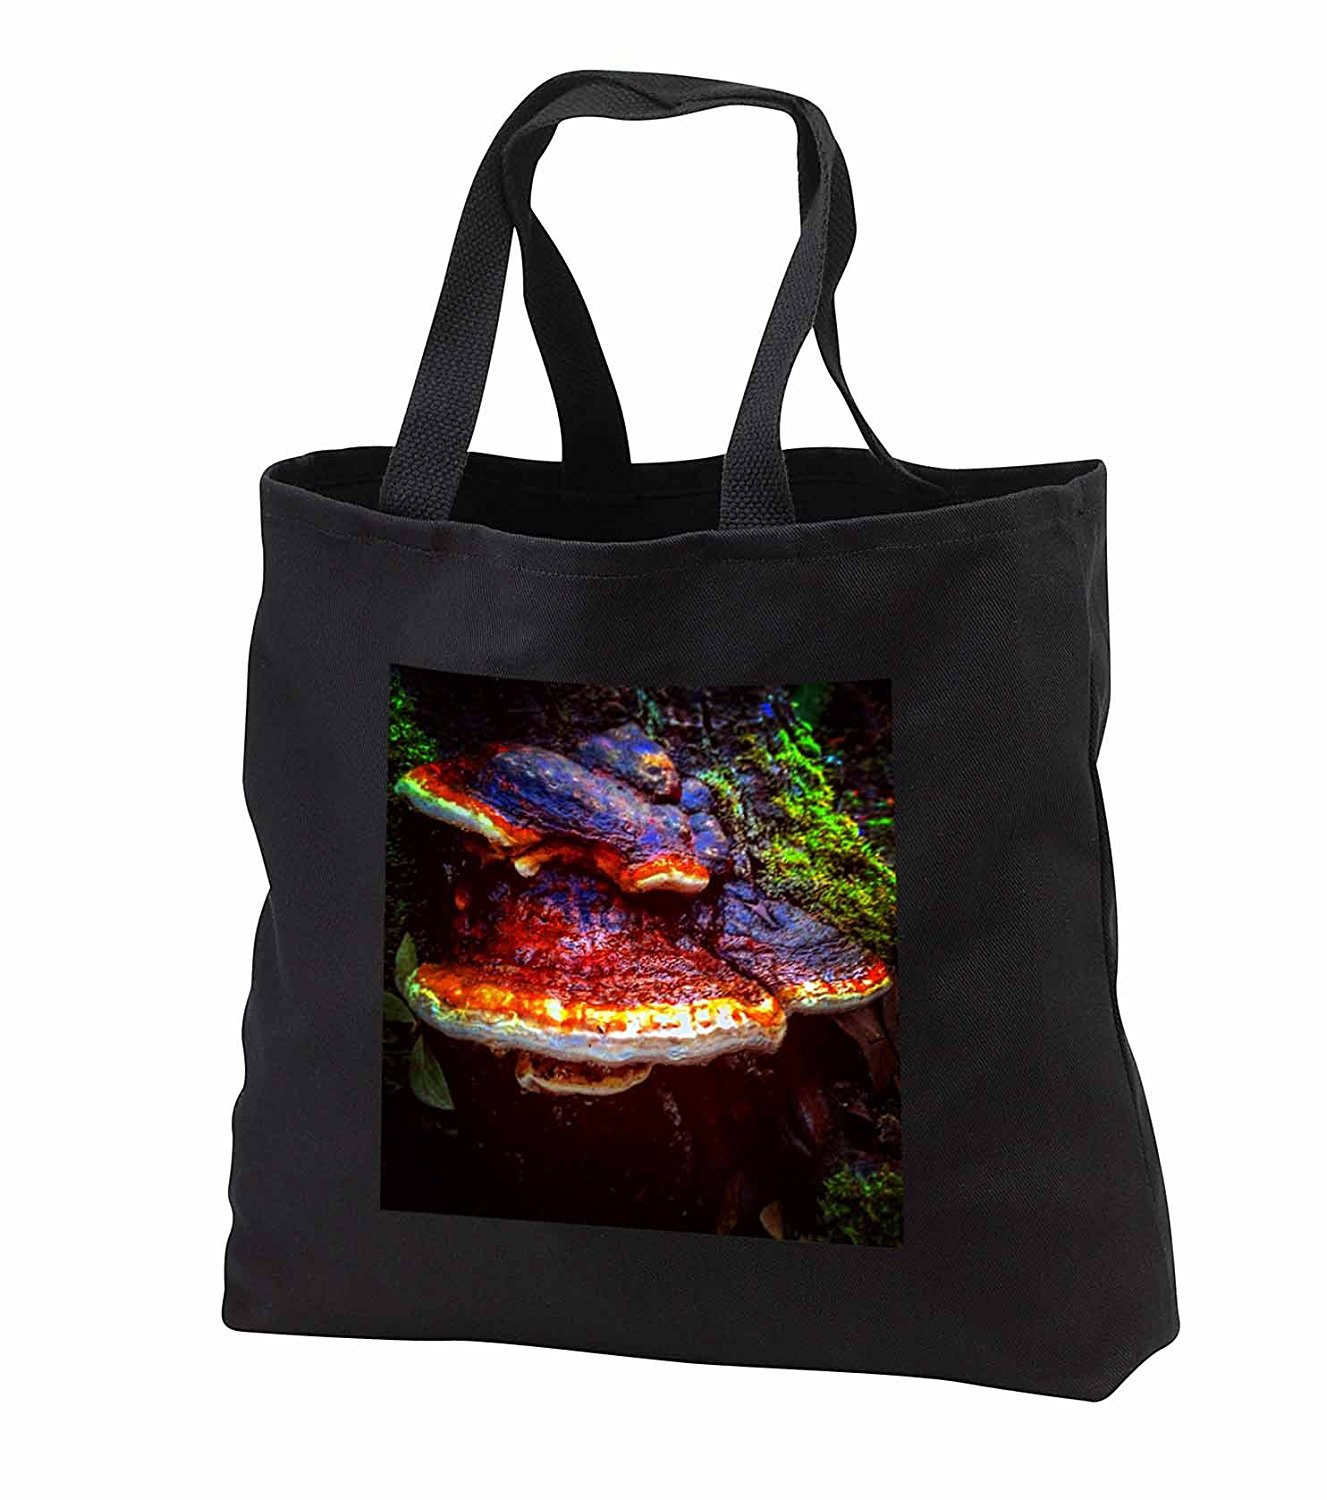 tb_245702 DYLAN SEIBOLD - PHOTOGRAPHY - TREE FUNGUS - Tote Bags